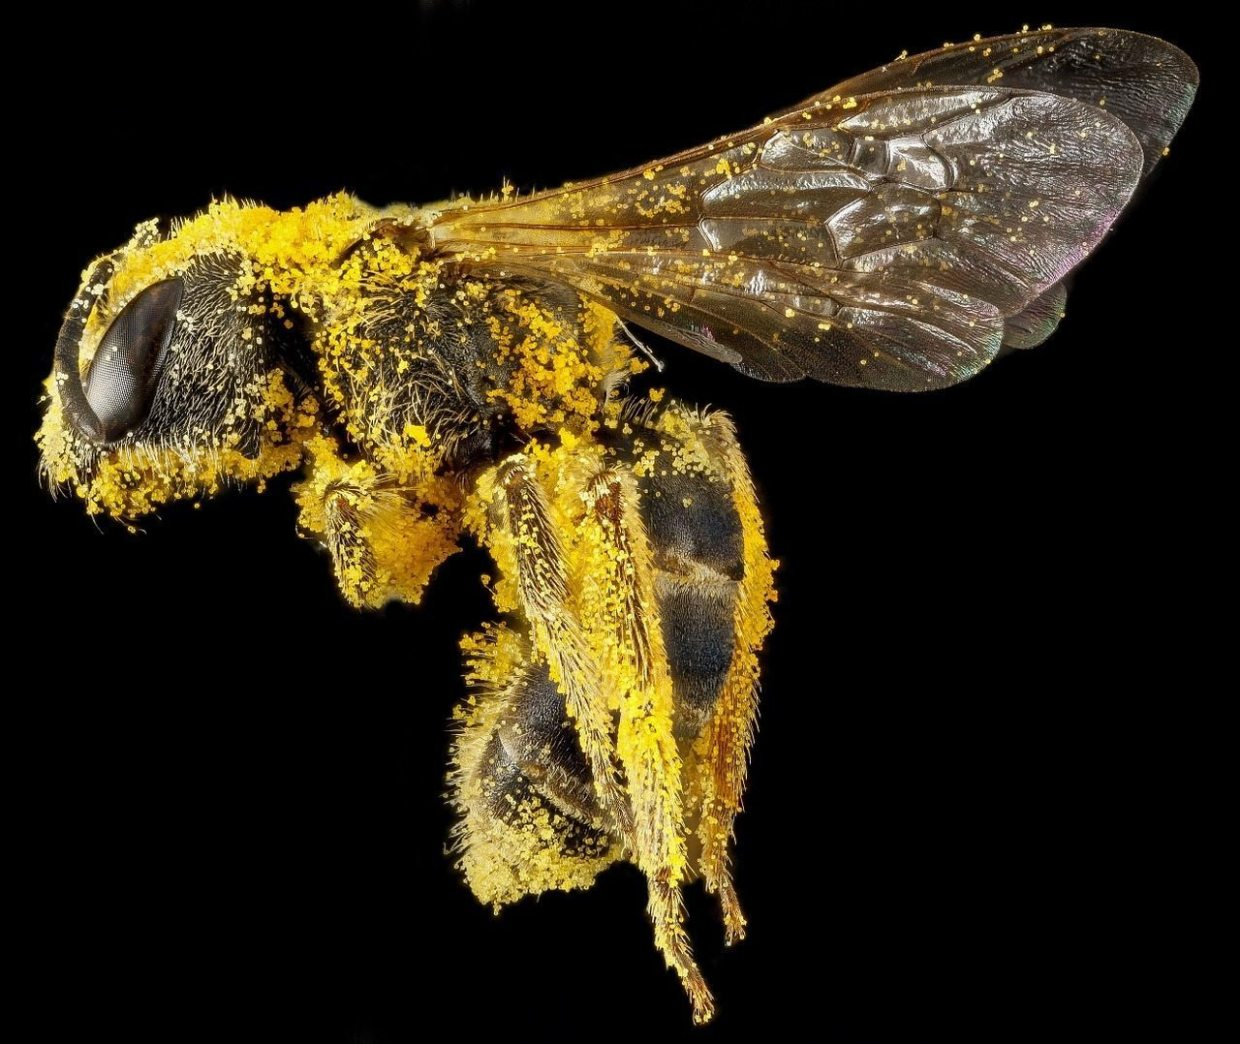 Image: Bee covered in pollen